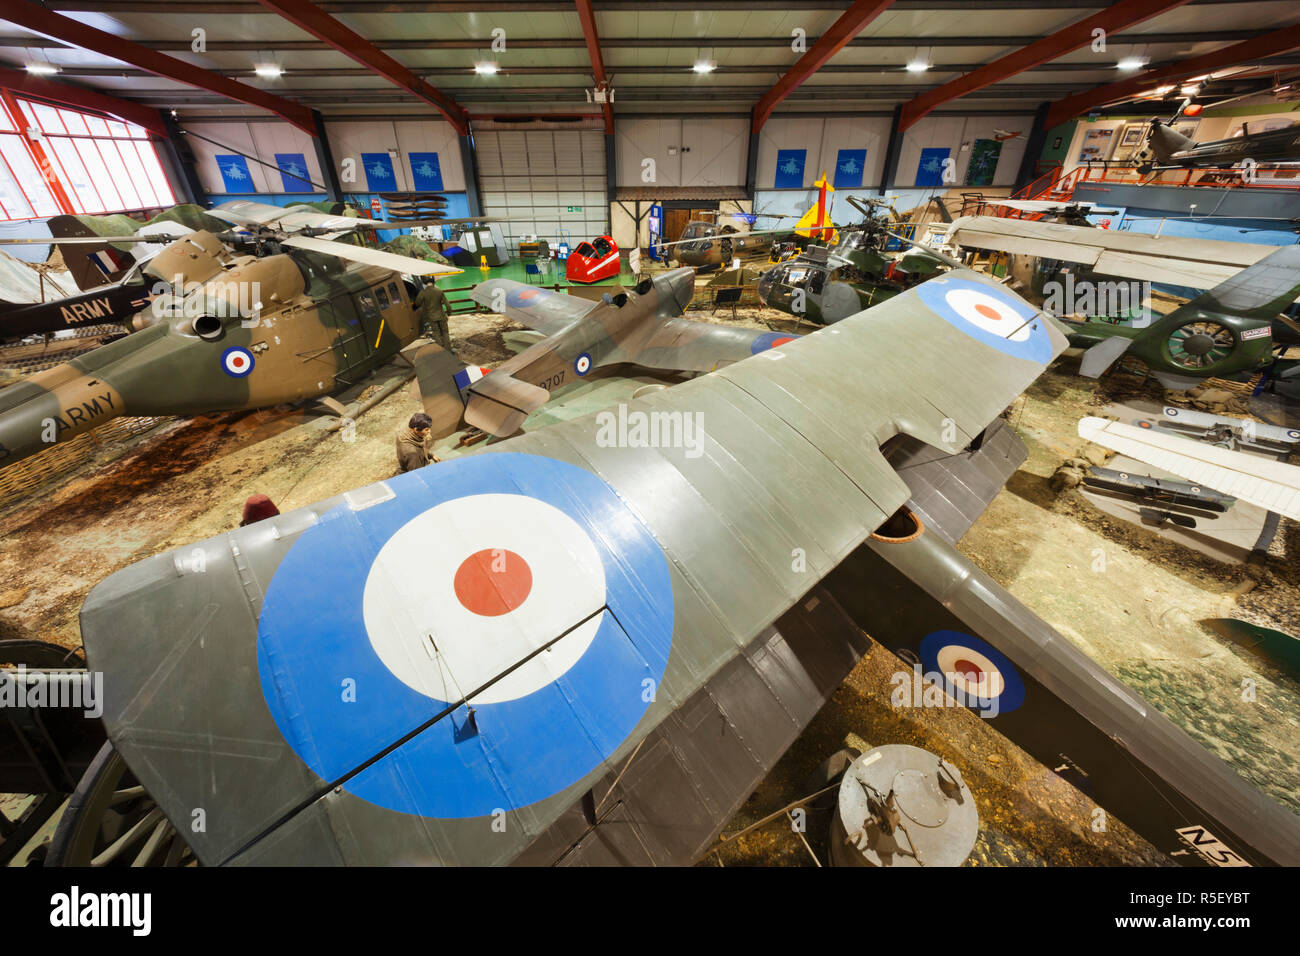 England, Hampshire, Andover, The Museum of Army Flying, Display of Historic Military Aircraft - Stock Image